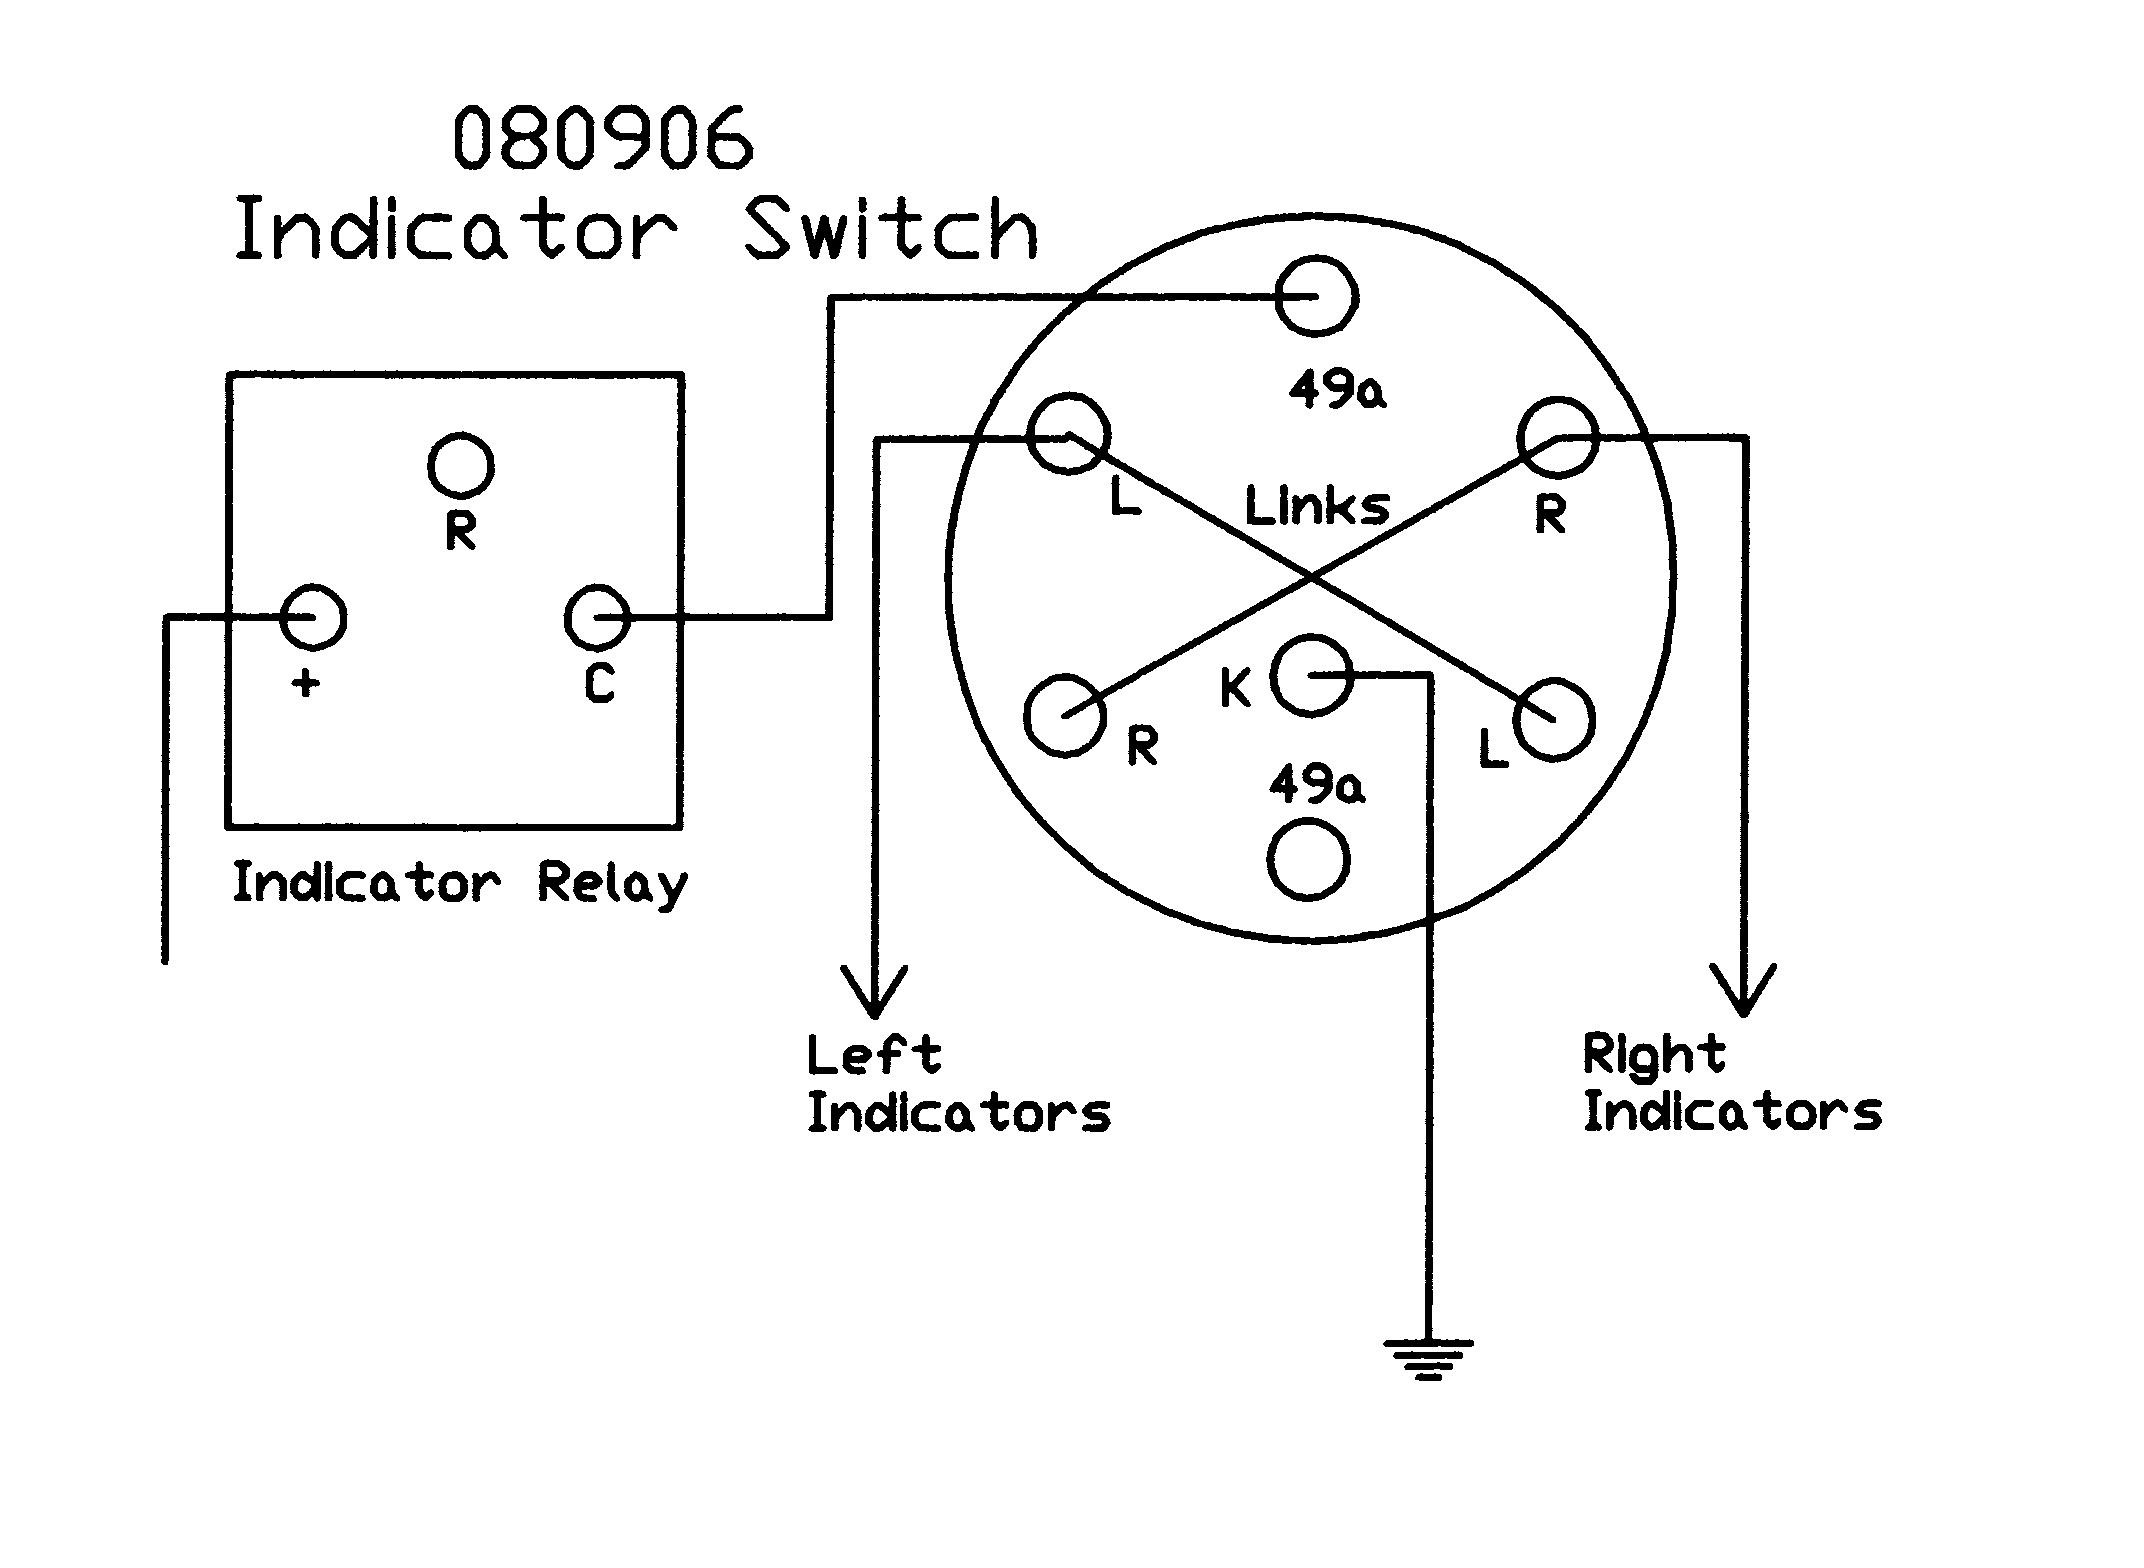 rocker switch with light wiring diagram with 44 on 43 moreover Rv Slide Out Switch Wiring Diagram together with 29a2s Question Wiring Separate Light Exhaust Fan in addition 44 together with odicis.